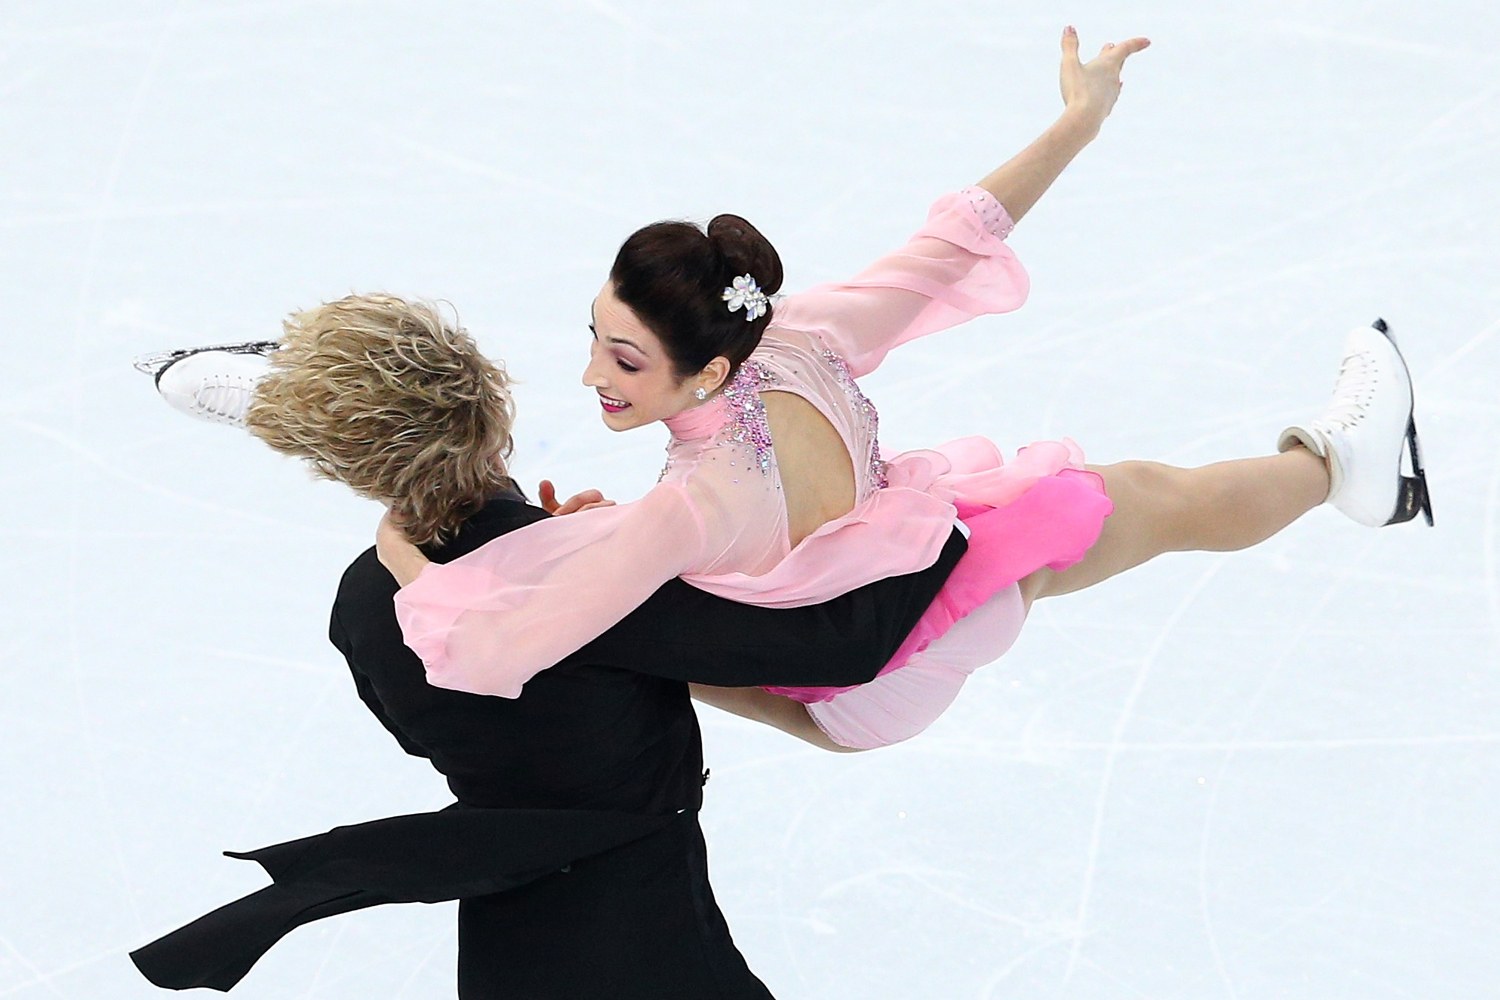 Meryl Davis and Charlie White of the United States compete during the Figure Skating Ice Dance Short Dance during the Sochi 2014 Winter Olympics at Iceberg Skating Palace on February 16, 2014 in Sochi, Russia.